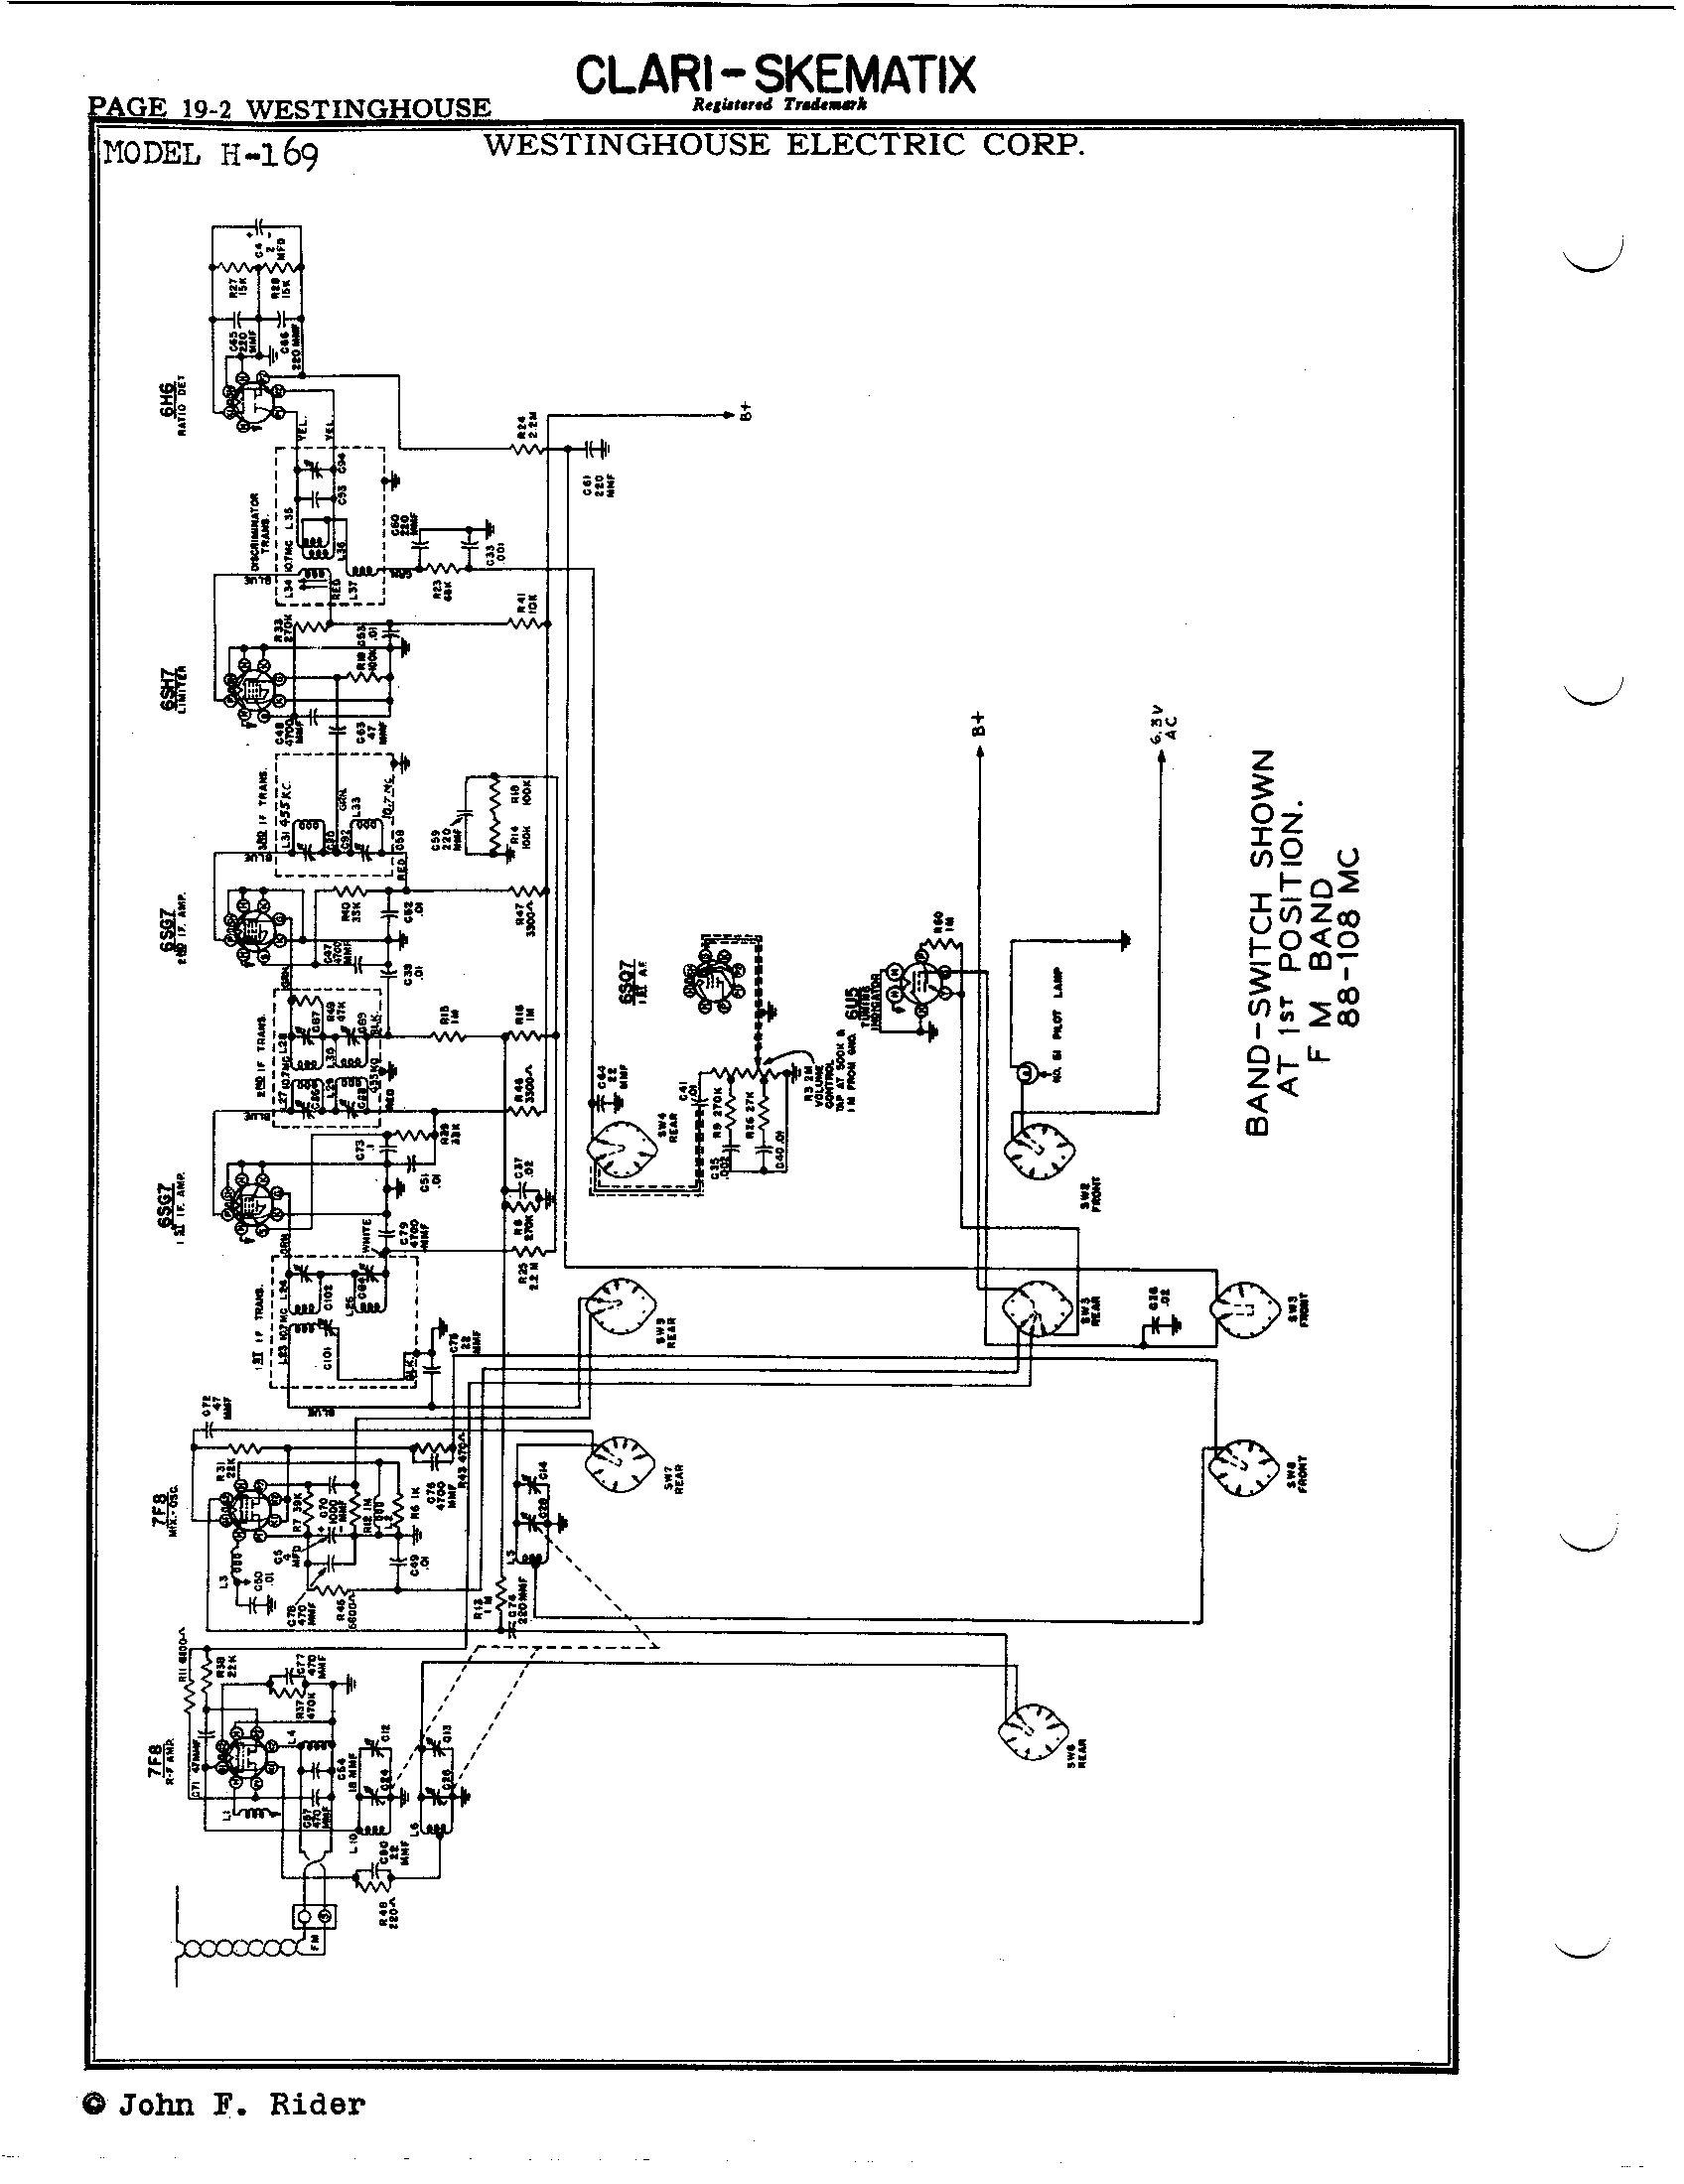 westinghouse electric corp  h